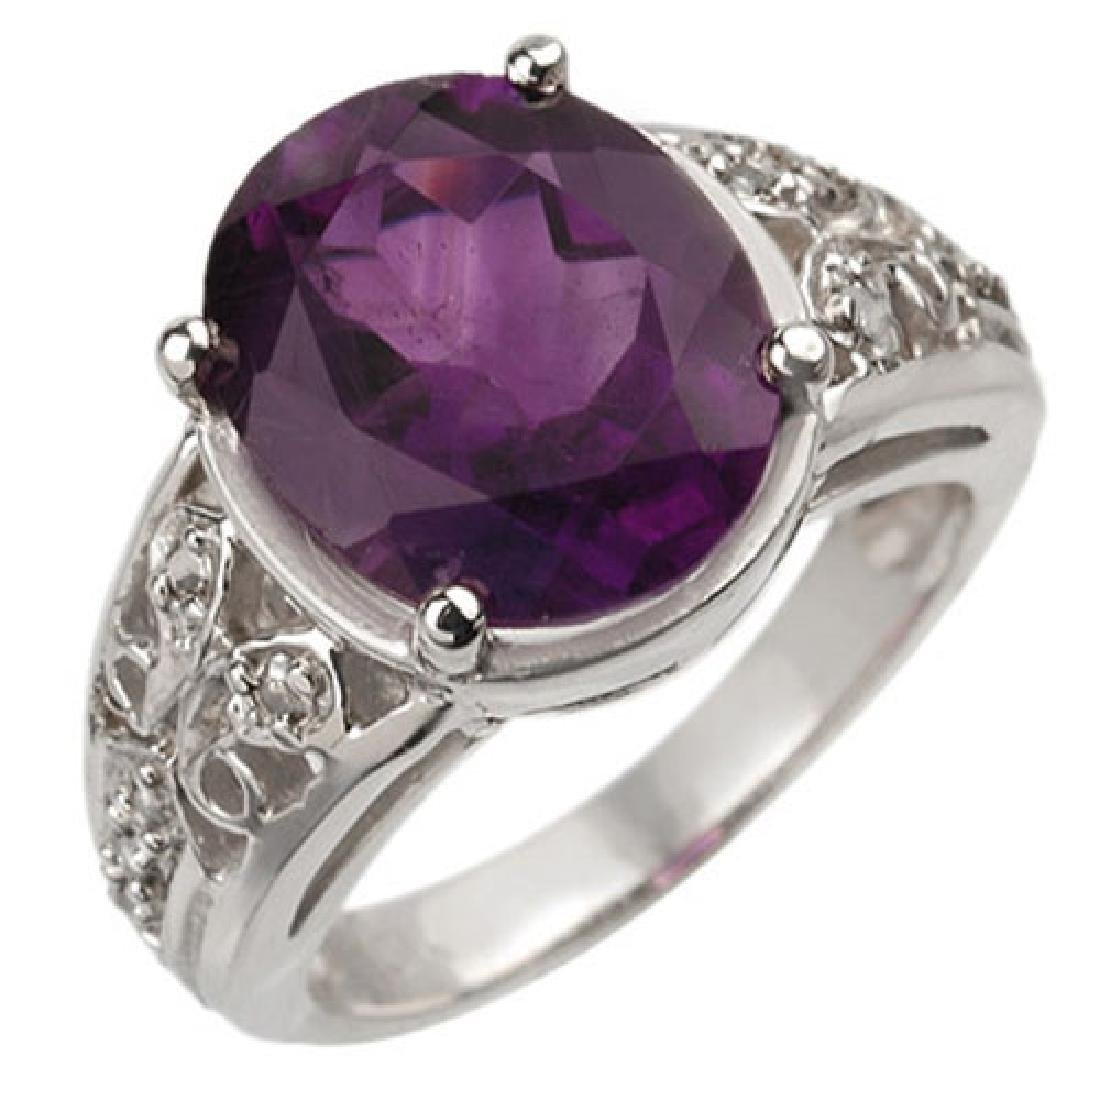 4.65 CTW Amethyst & Diamond Ring 10K White Gold